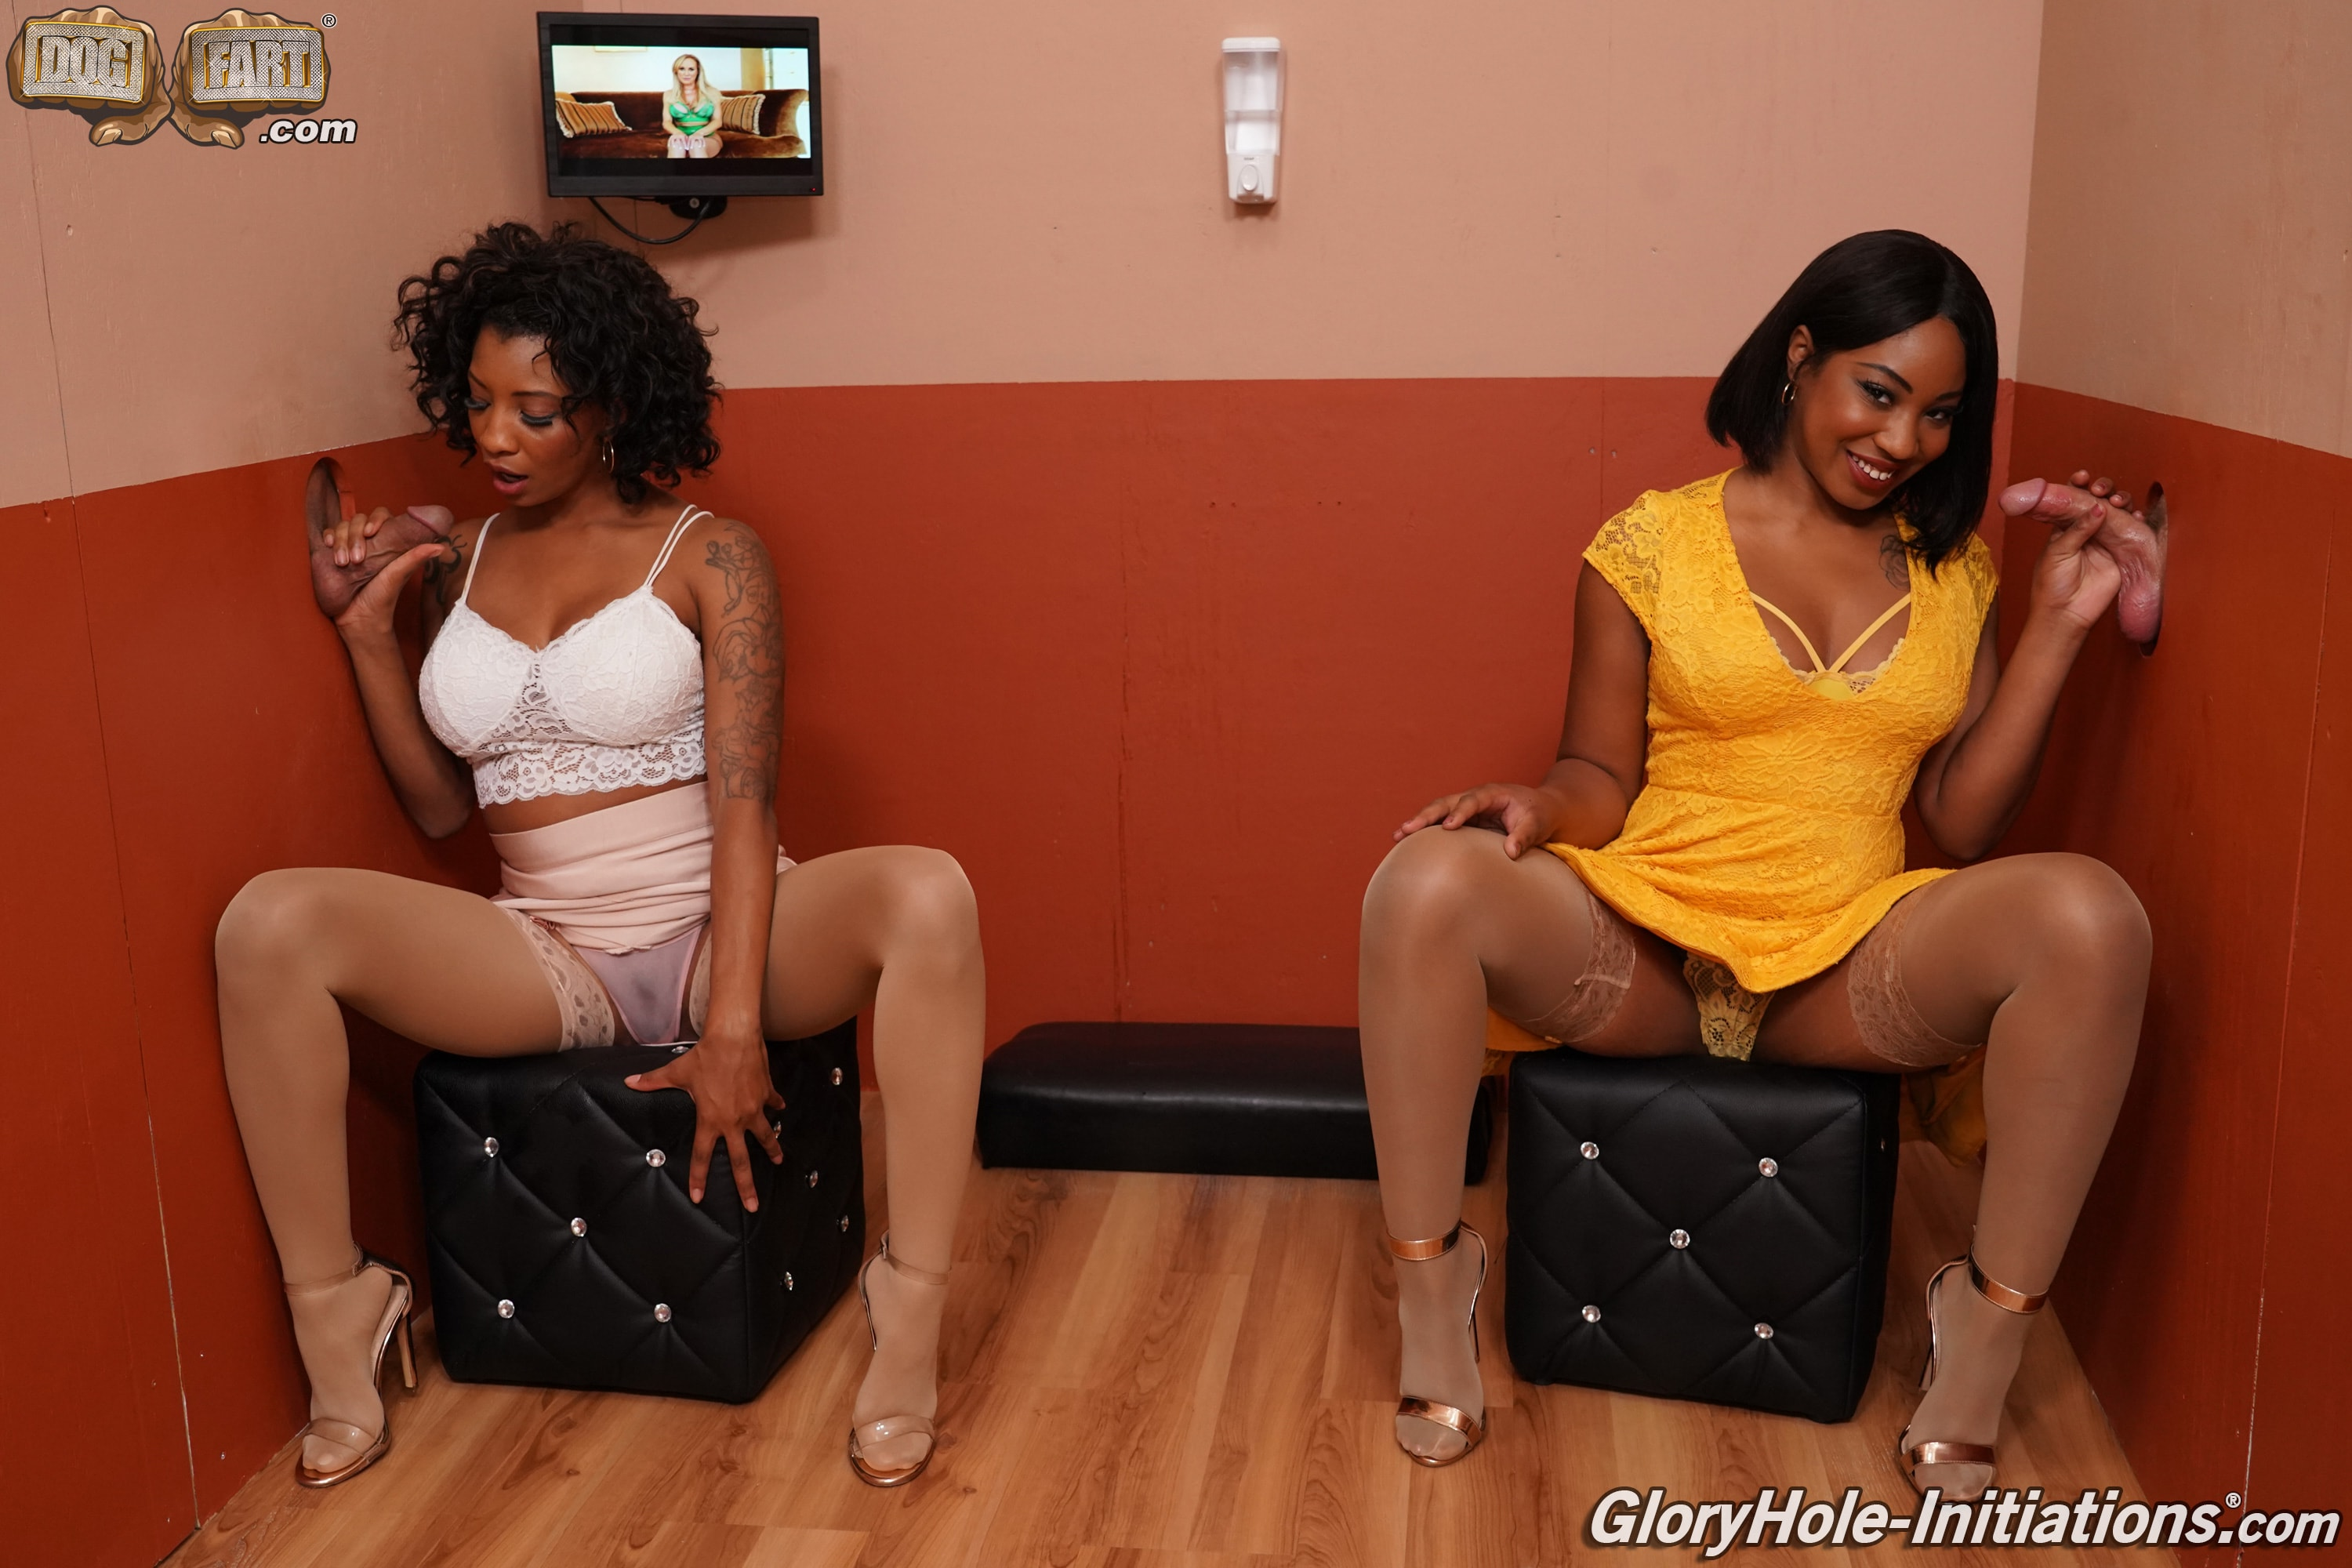 Dogfart 'and September Reign - Gloryhole Initiations' starring Lala Ivey (Photo 14)